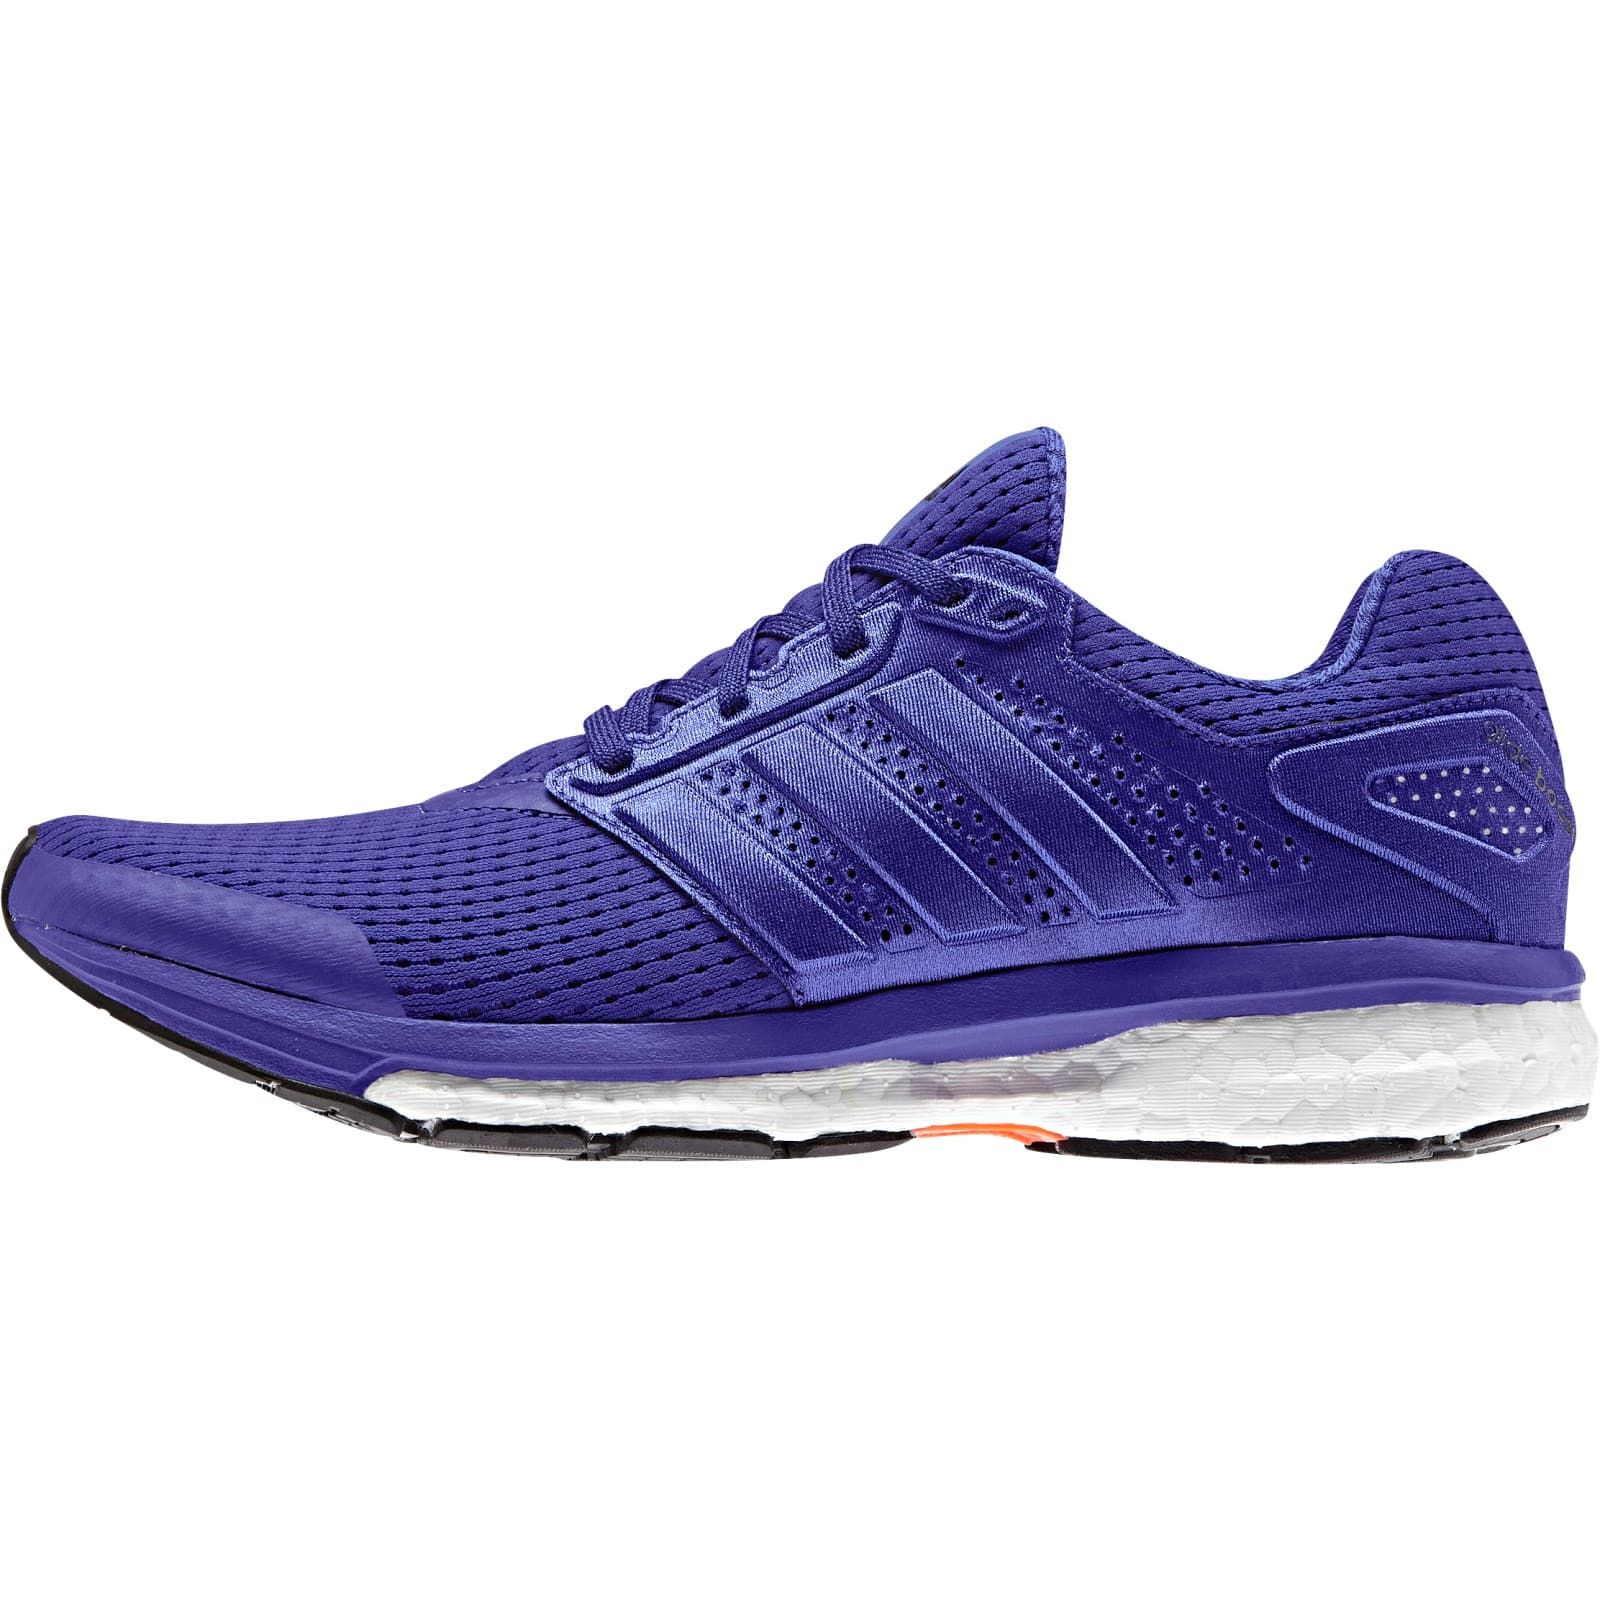 ADIDAS Supernova Glide Boost 7 W Running Shoes For Women